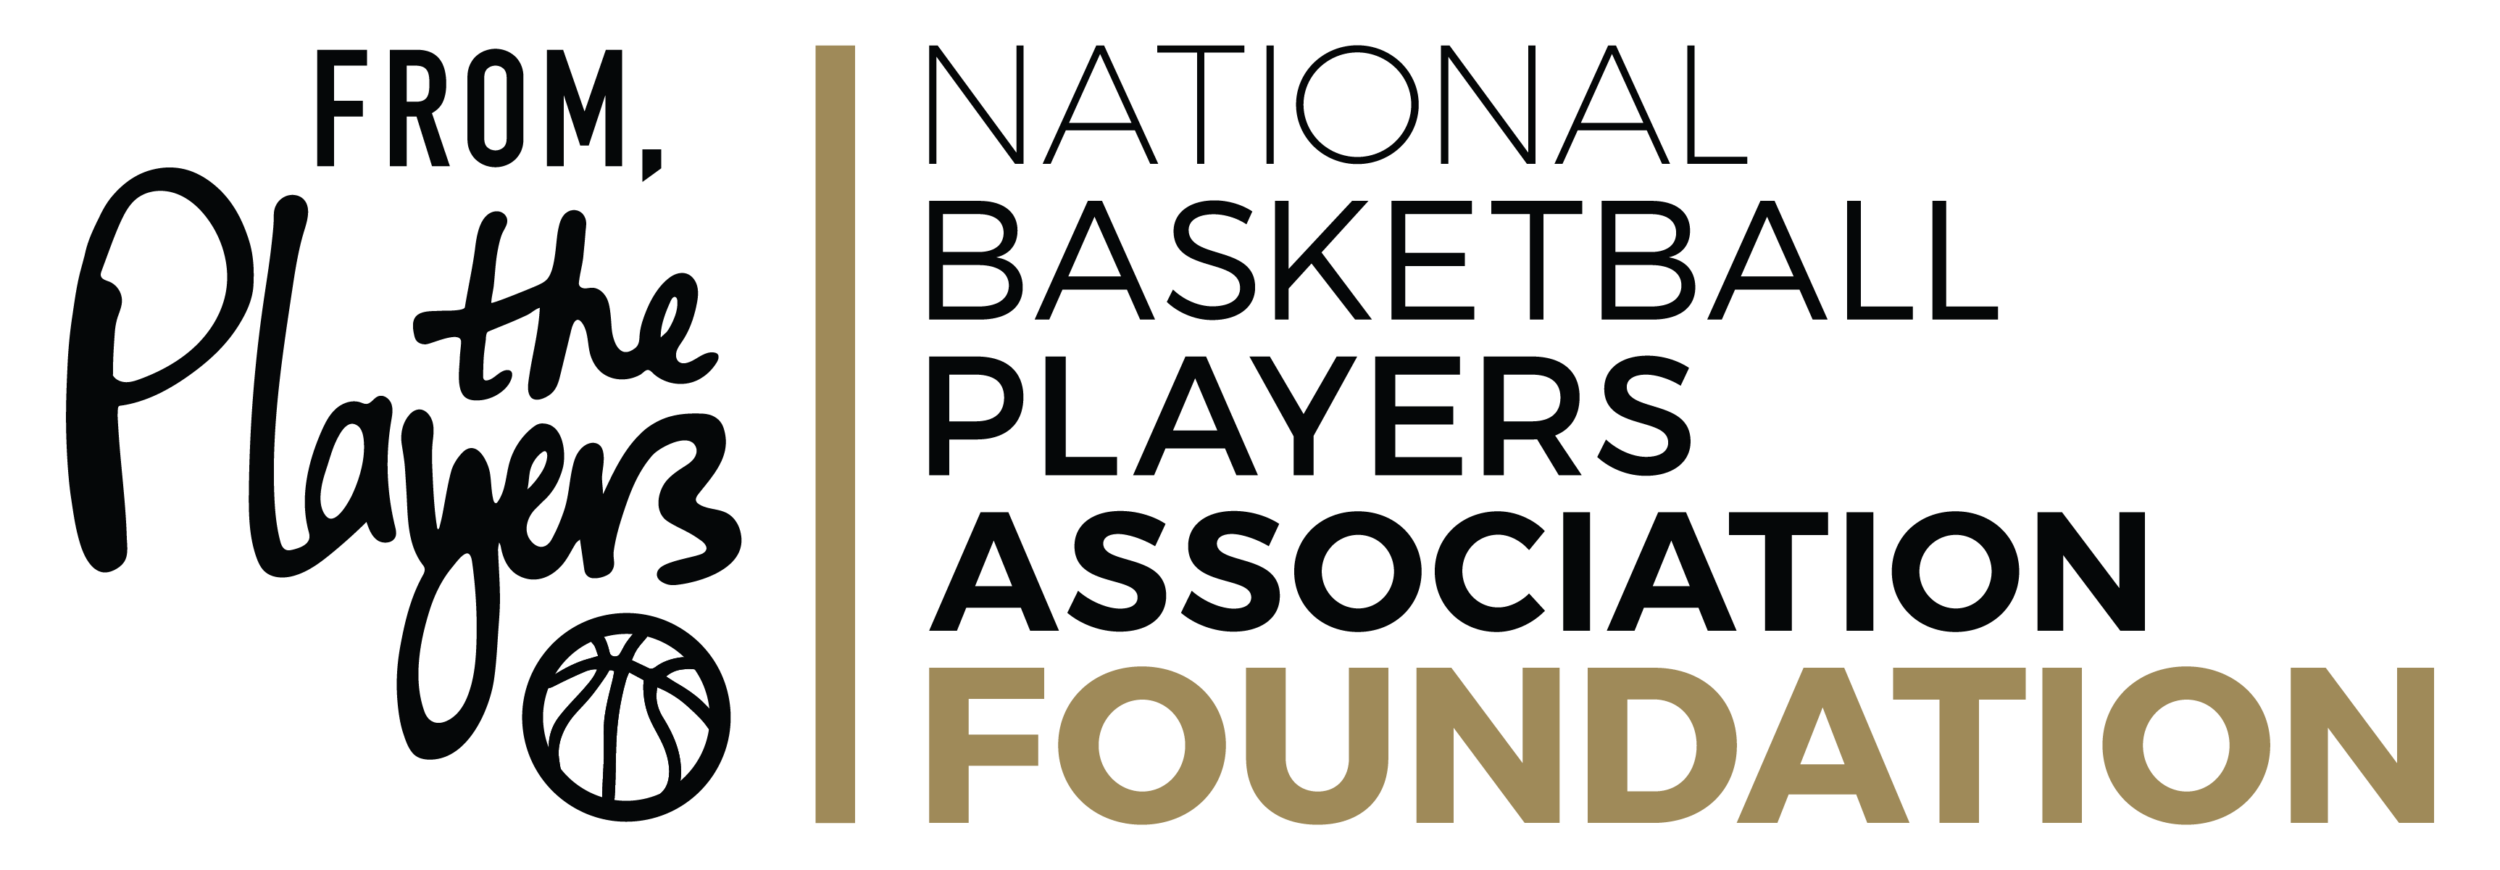 NBPA Foundation From the Players Logo Lockup Black 1